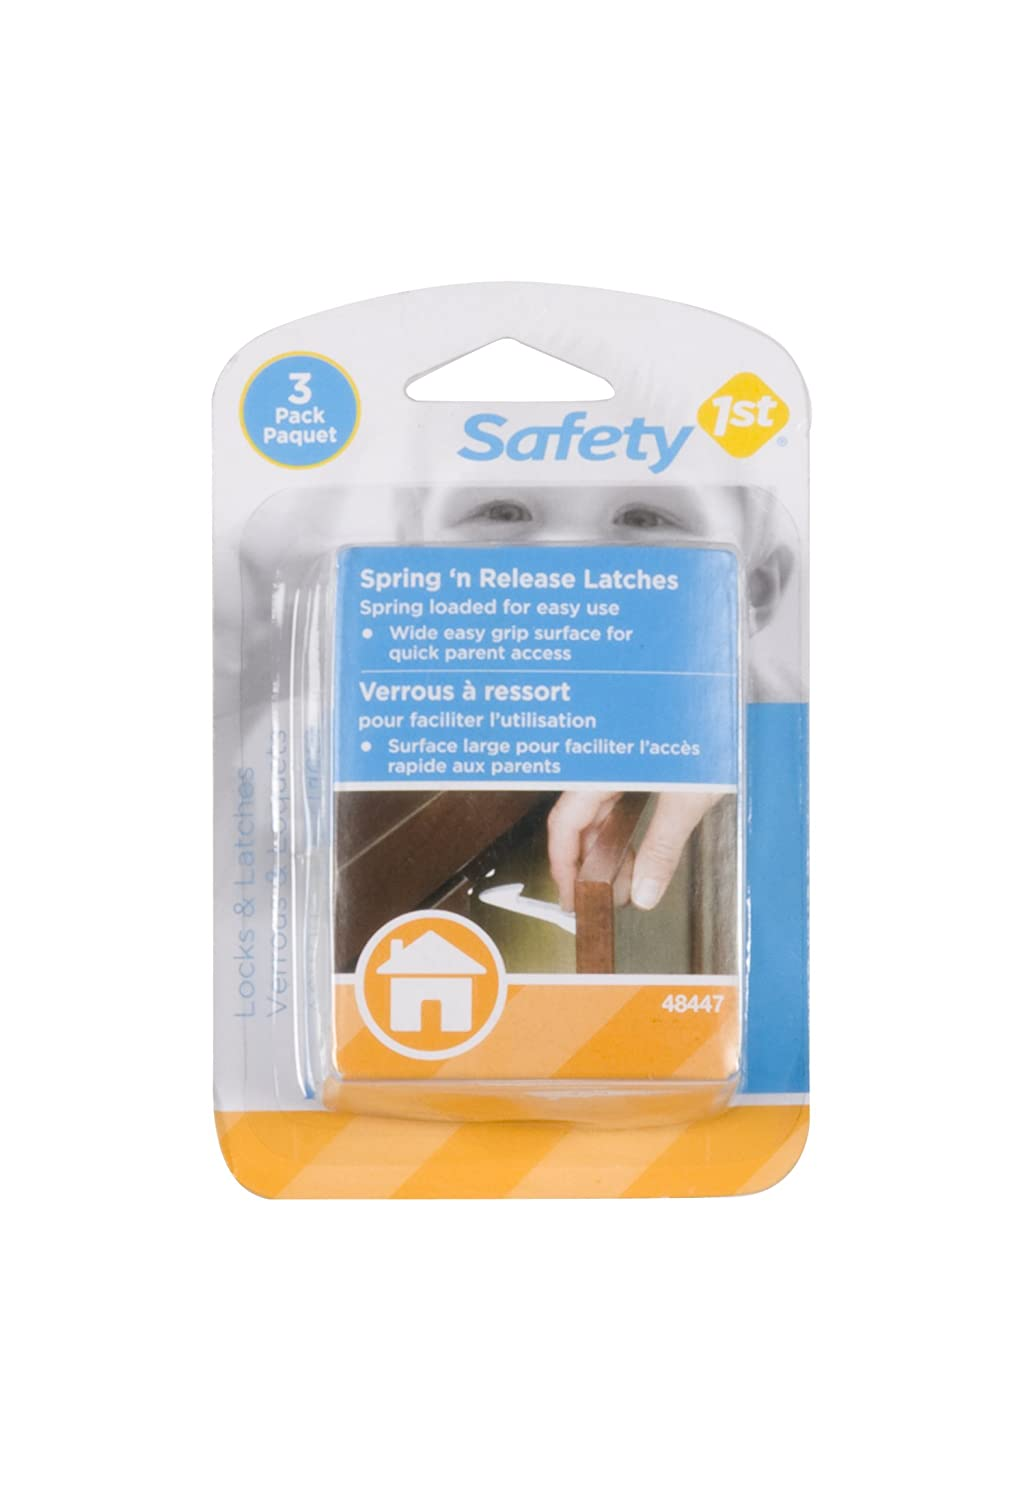 Amazon.com : Safety 1st 3 Pack Spring n' Release Latch : Cabinet ...